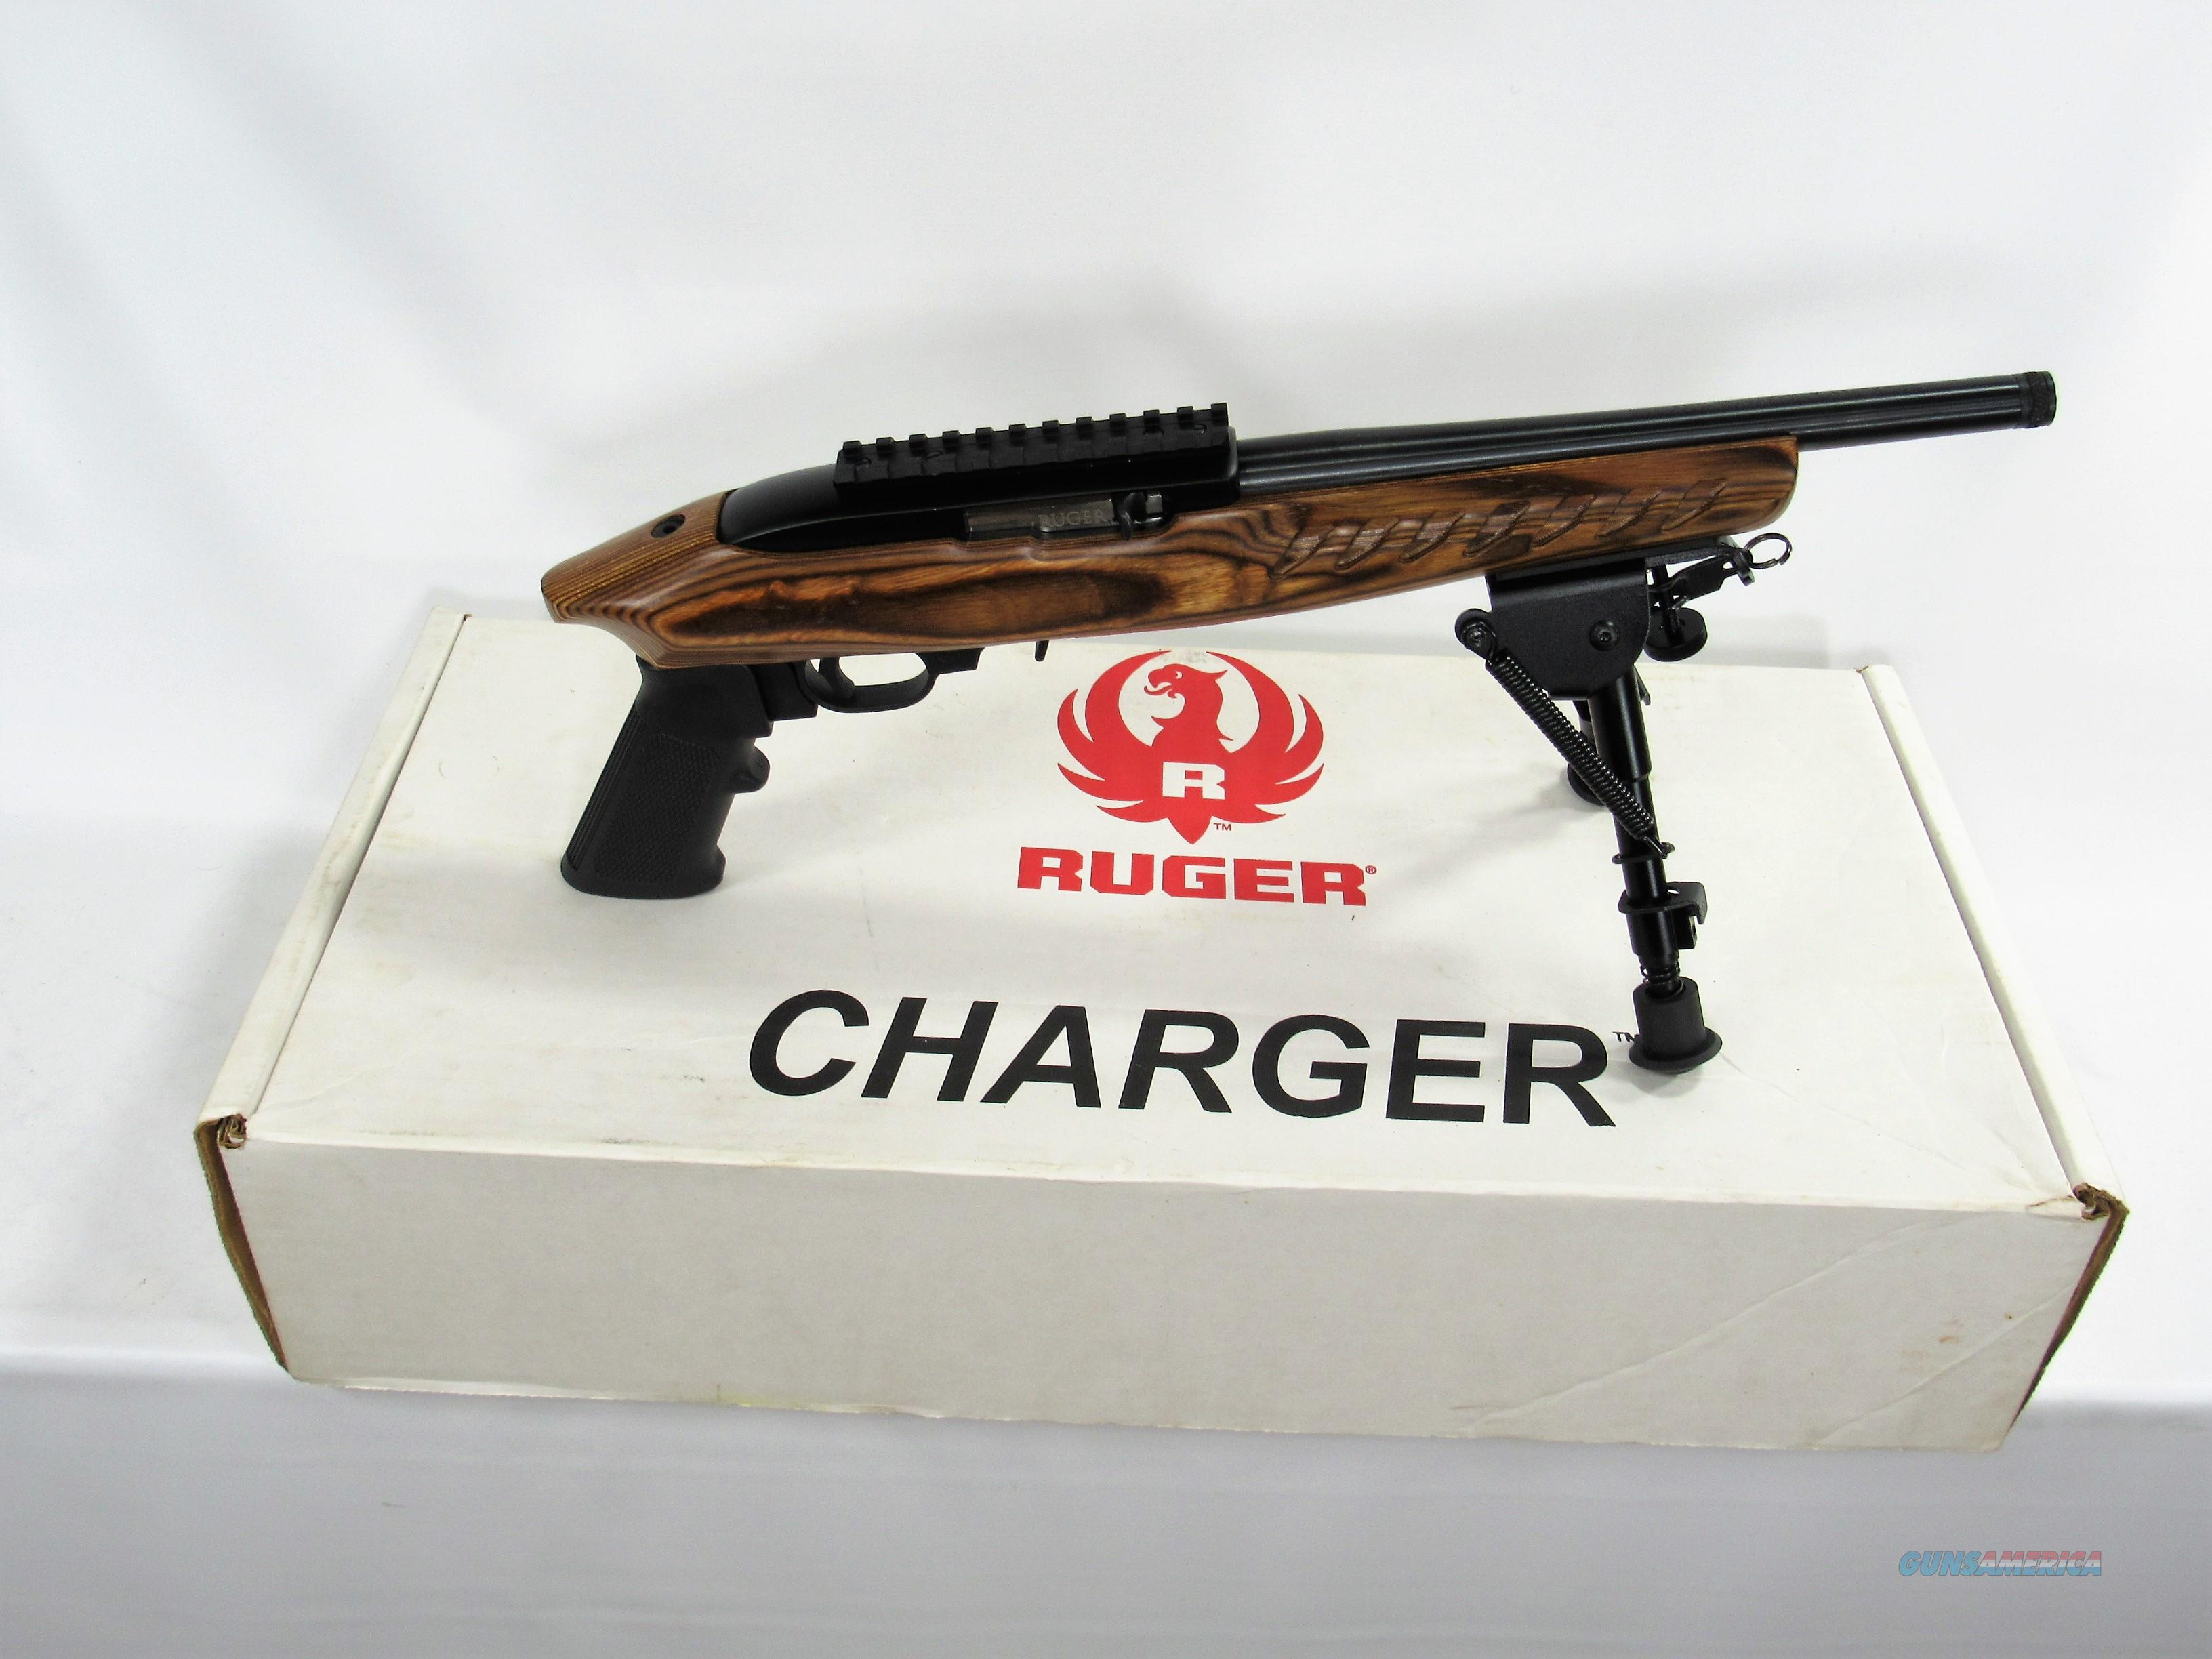 120Y RUGER CHARGER 22  Guns > Pistols > Ruger Semi-Auto Pistols > Charger Series